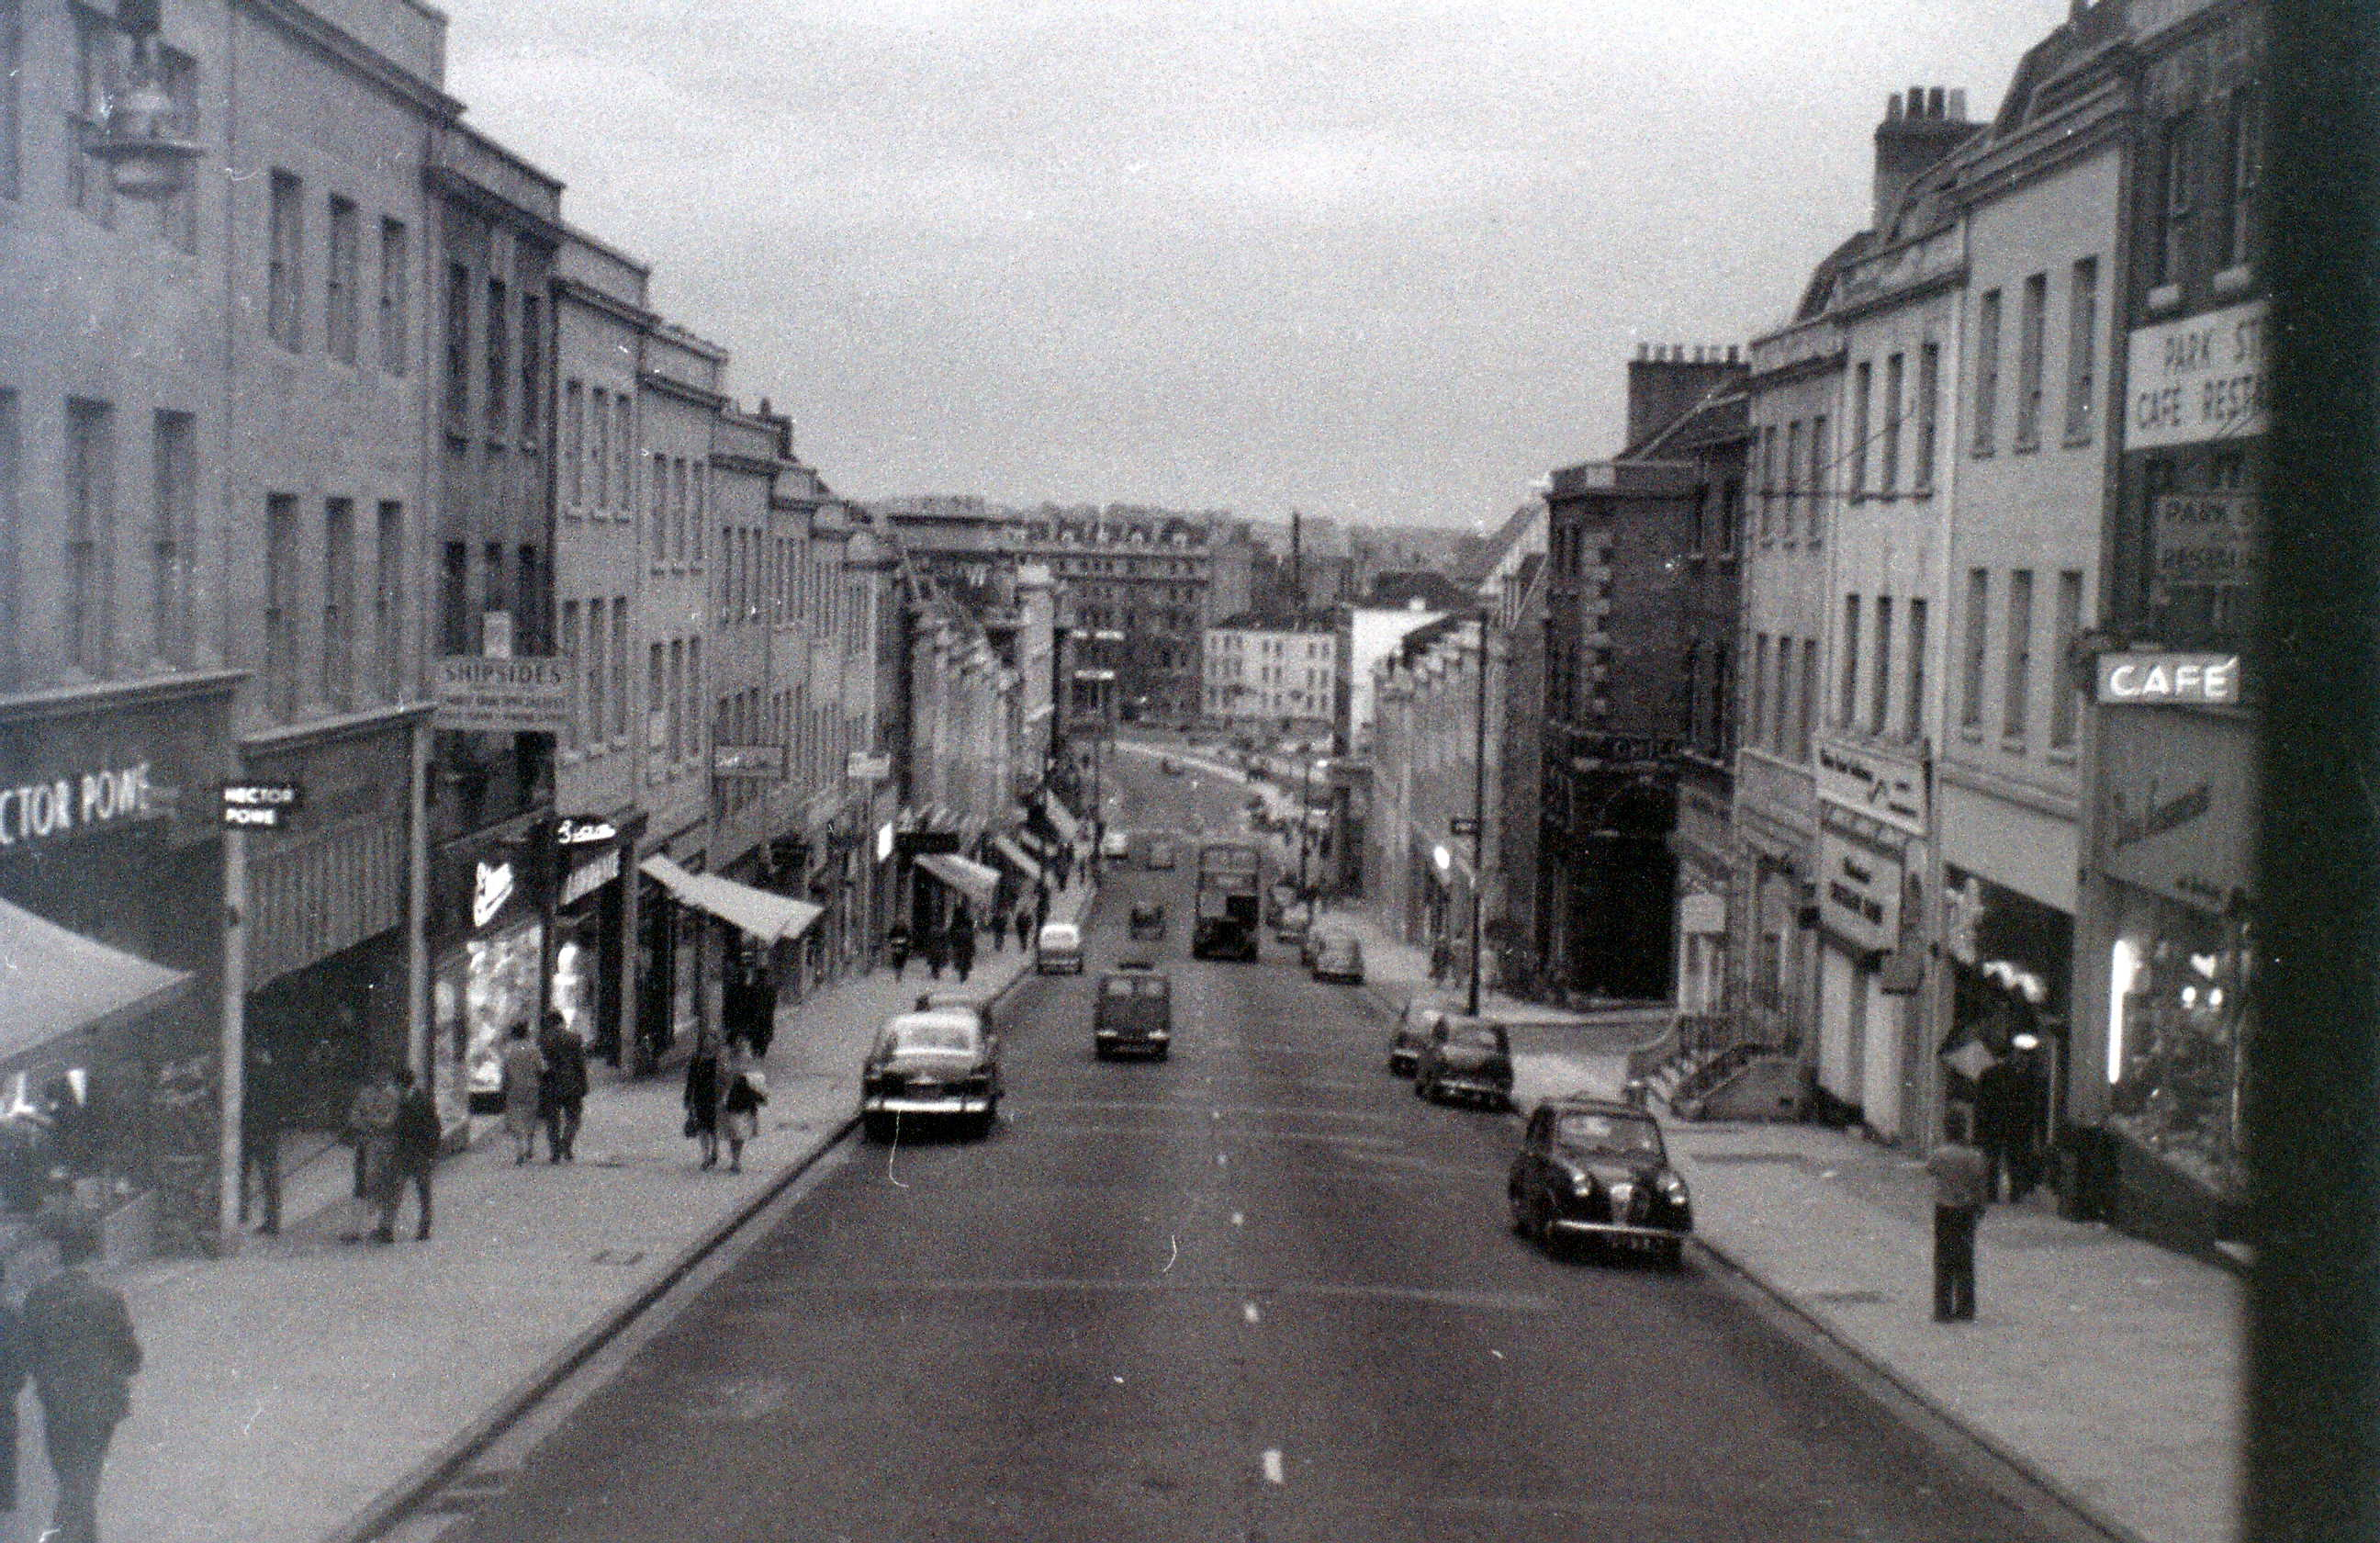 park street bristol 30 july 1958 flashbak